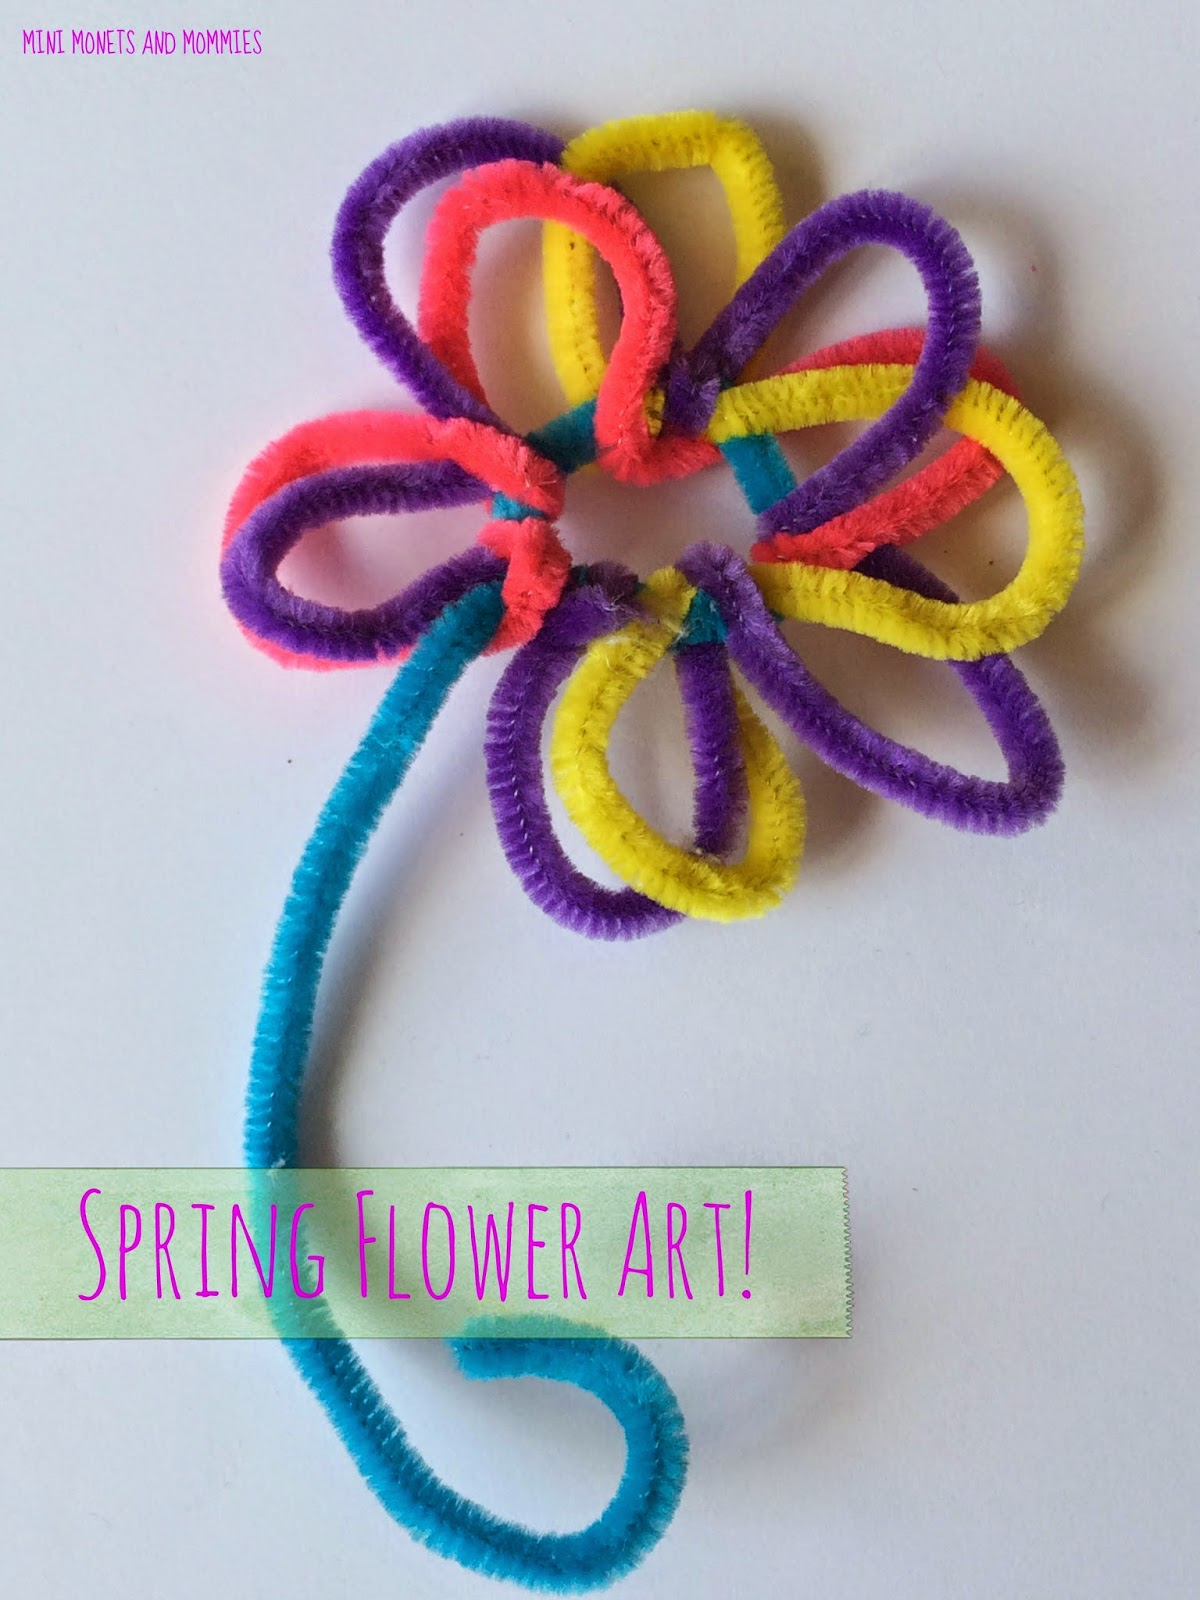 Kids' pipecleaner art